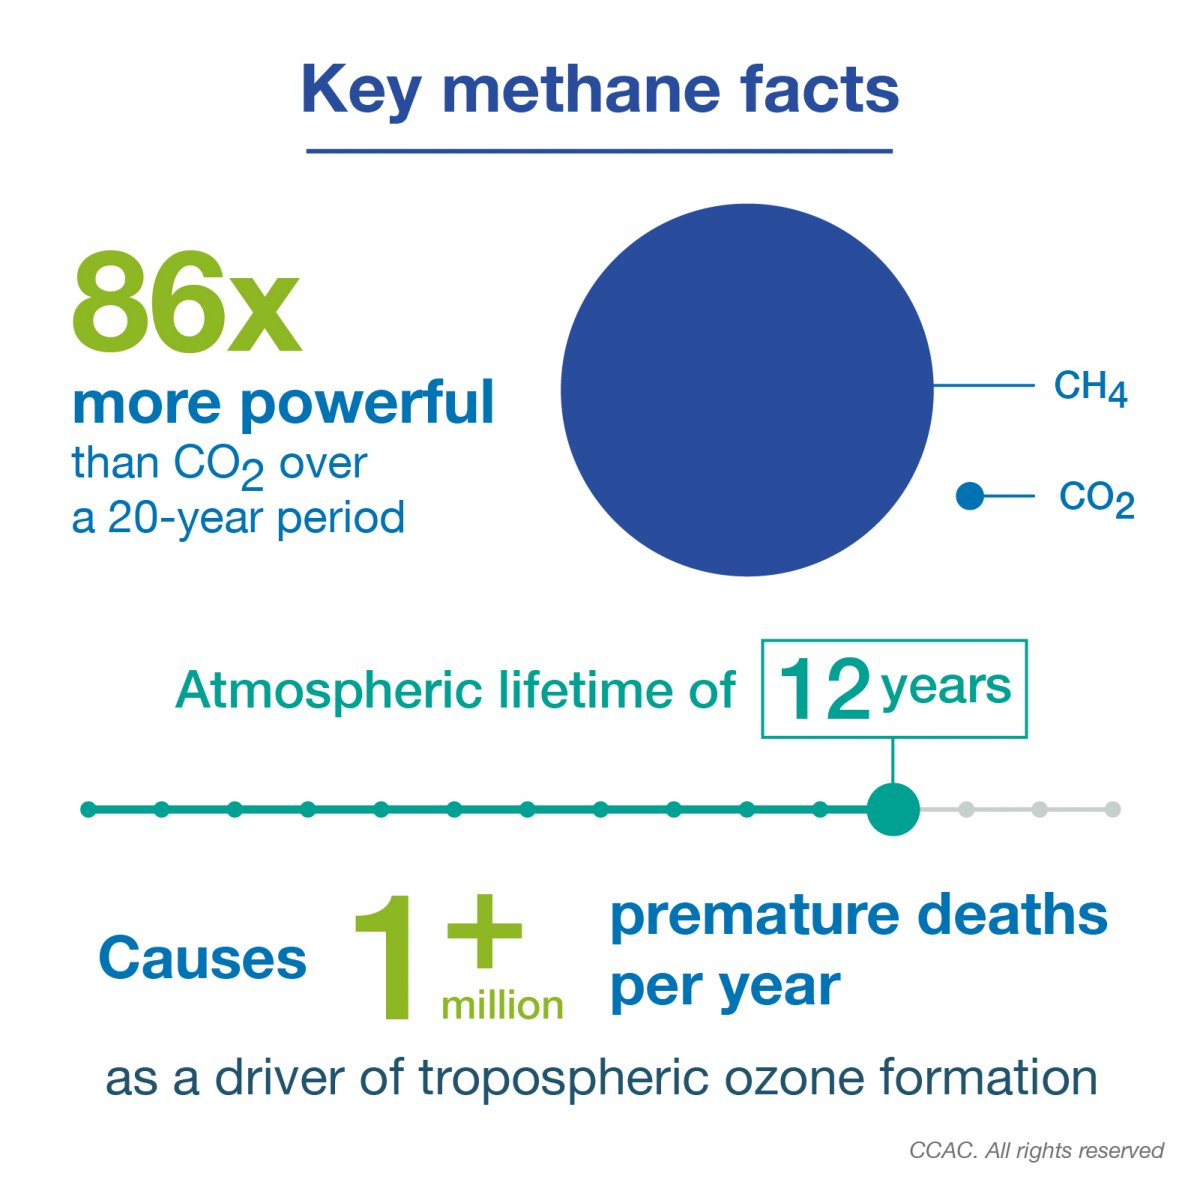 Methane emissions and mitigation potential